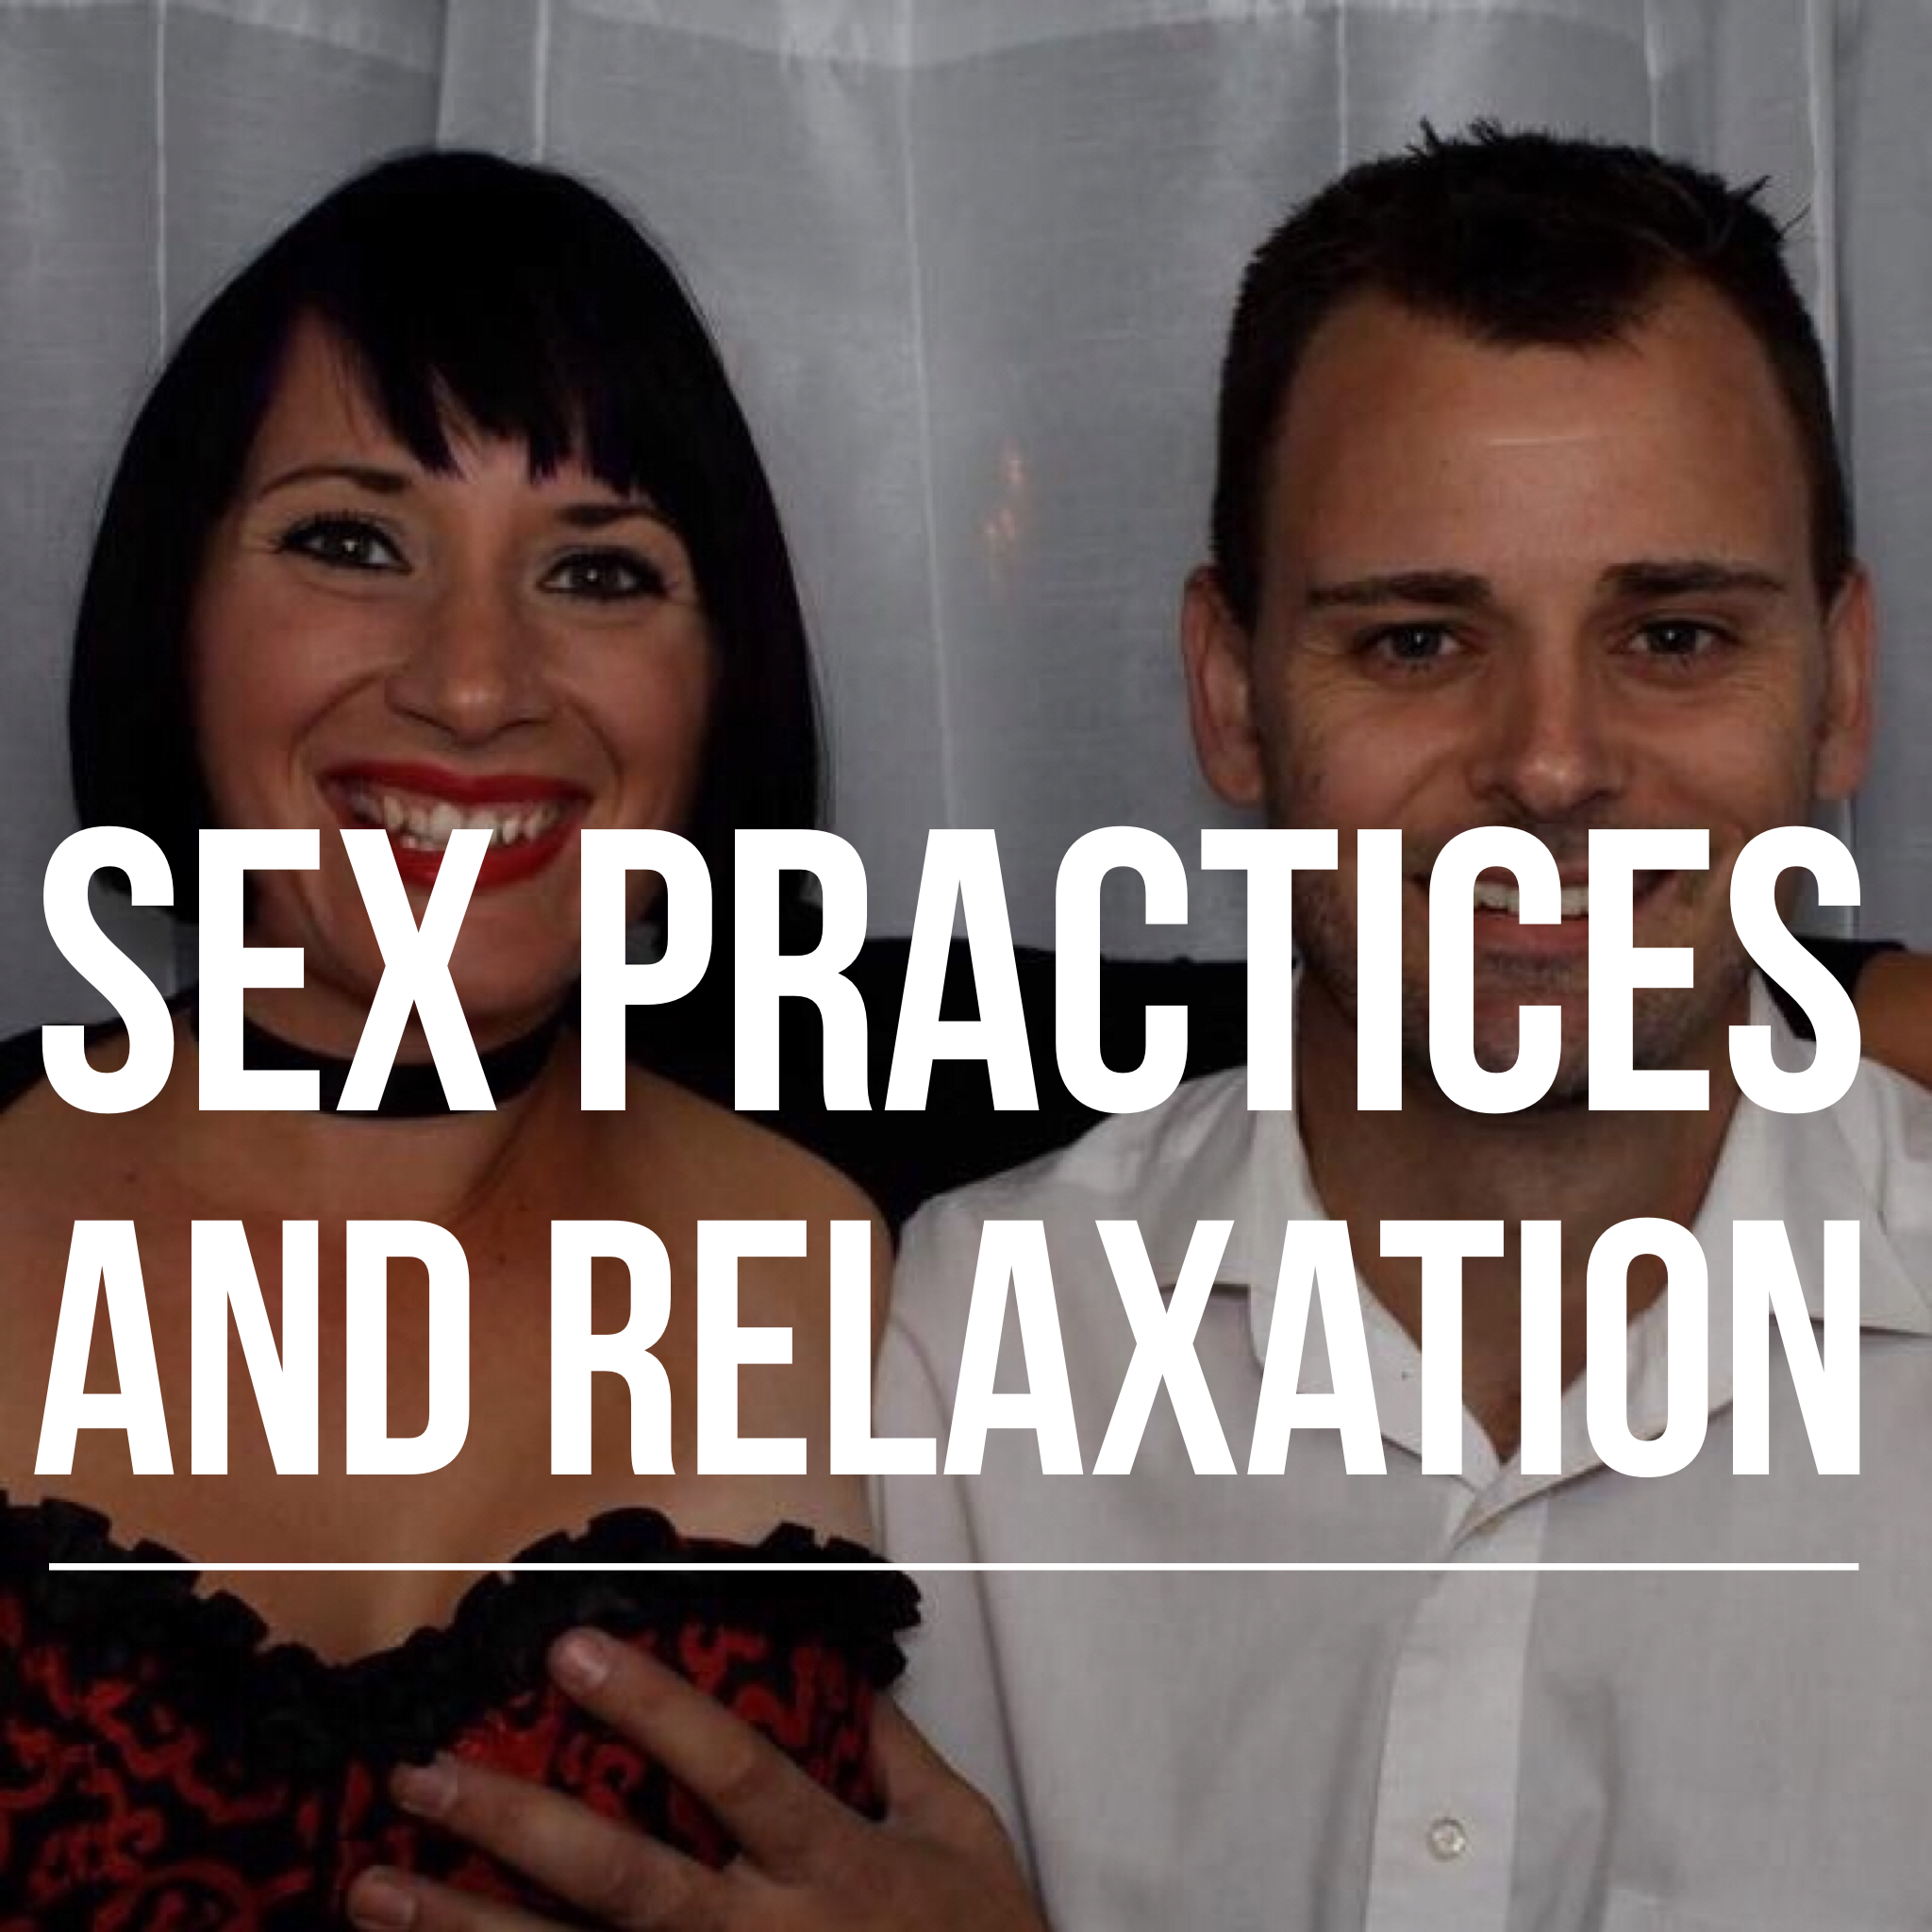 Sex Practices and Relaxation podcast art.PNG